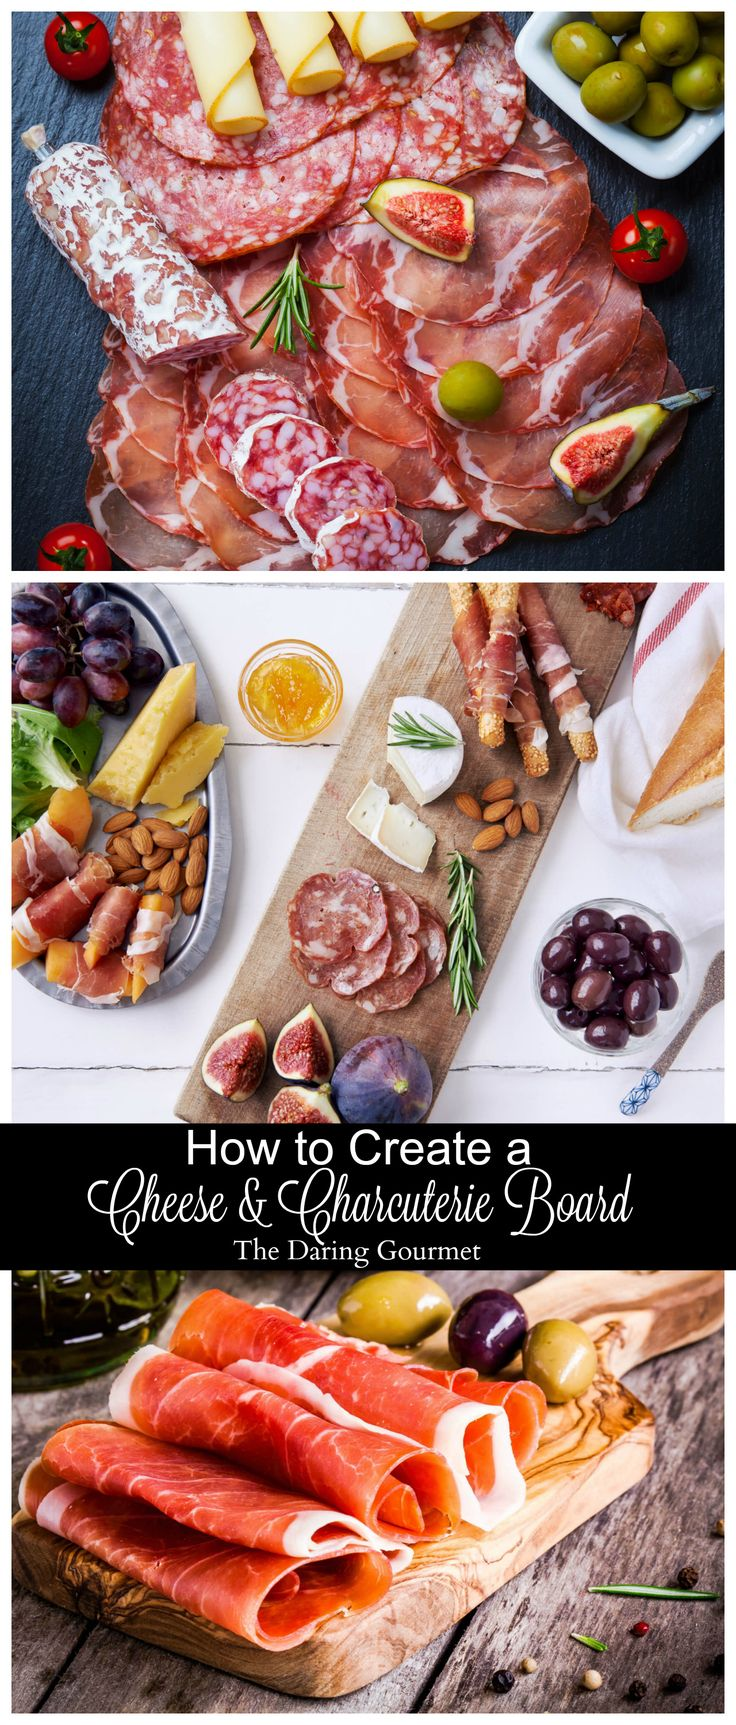 How To Create a Cheese & Charcuterie Board.  daringgourmet.com